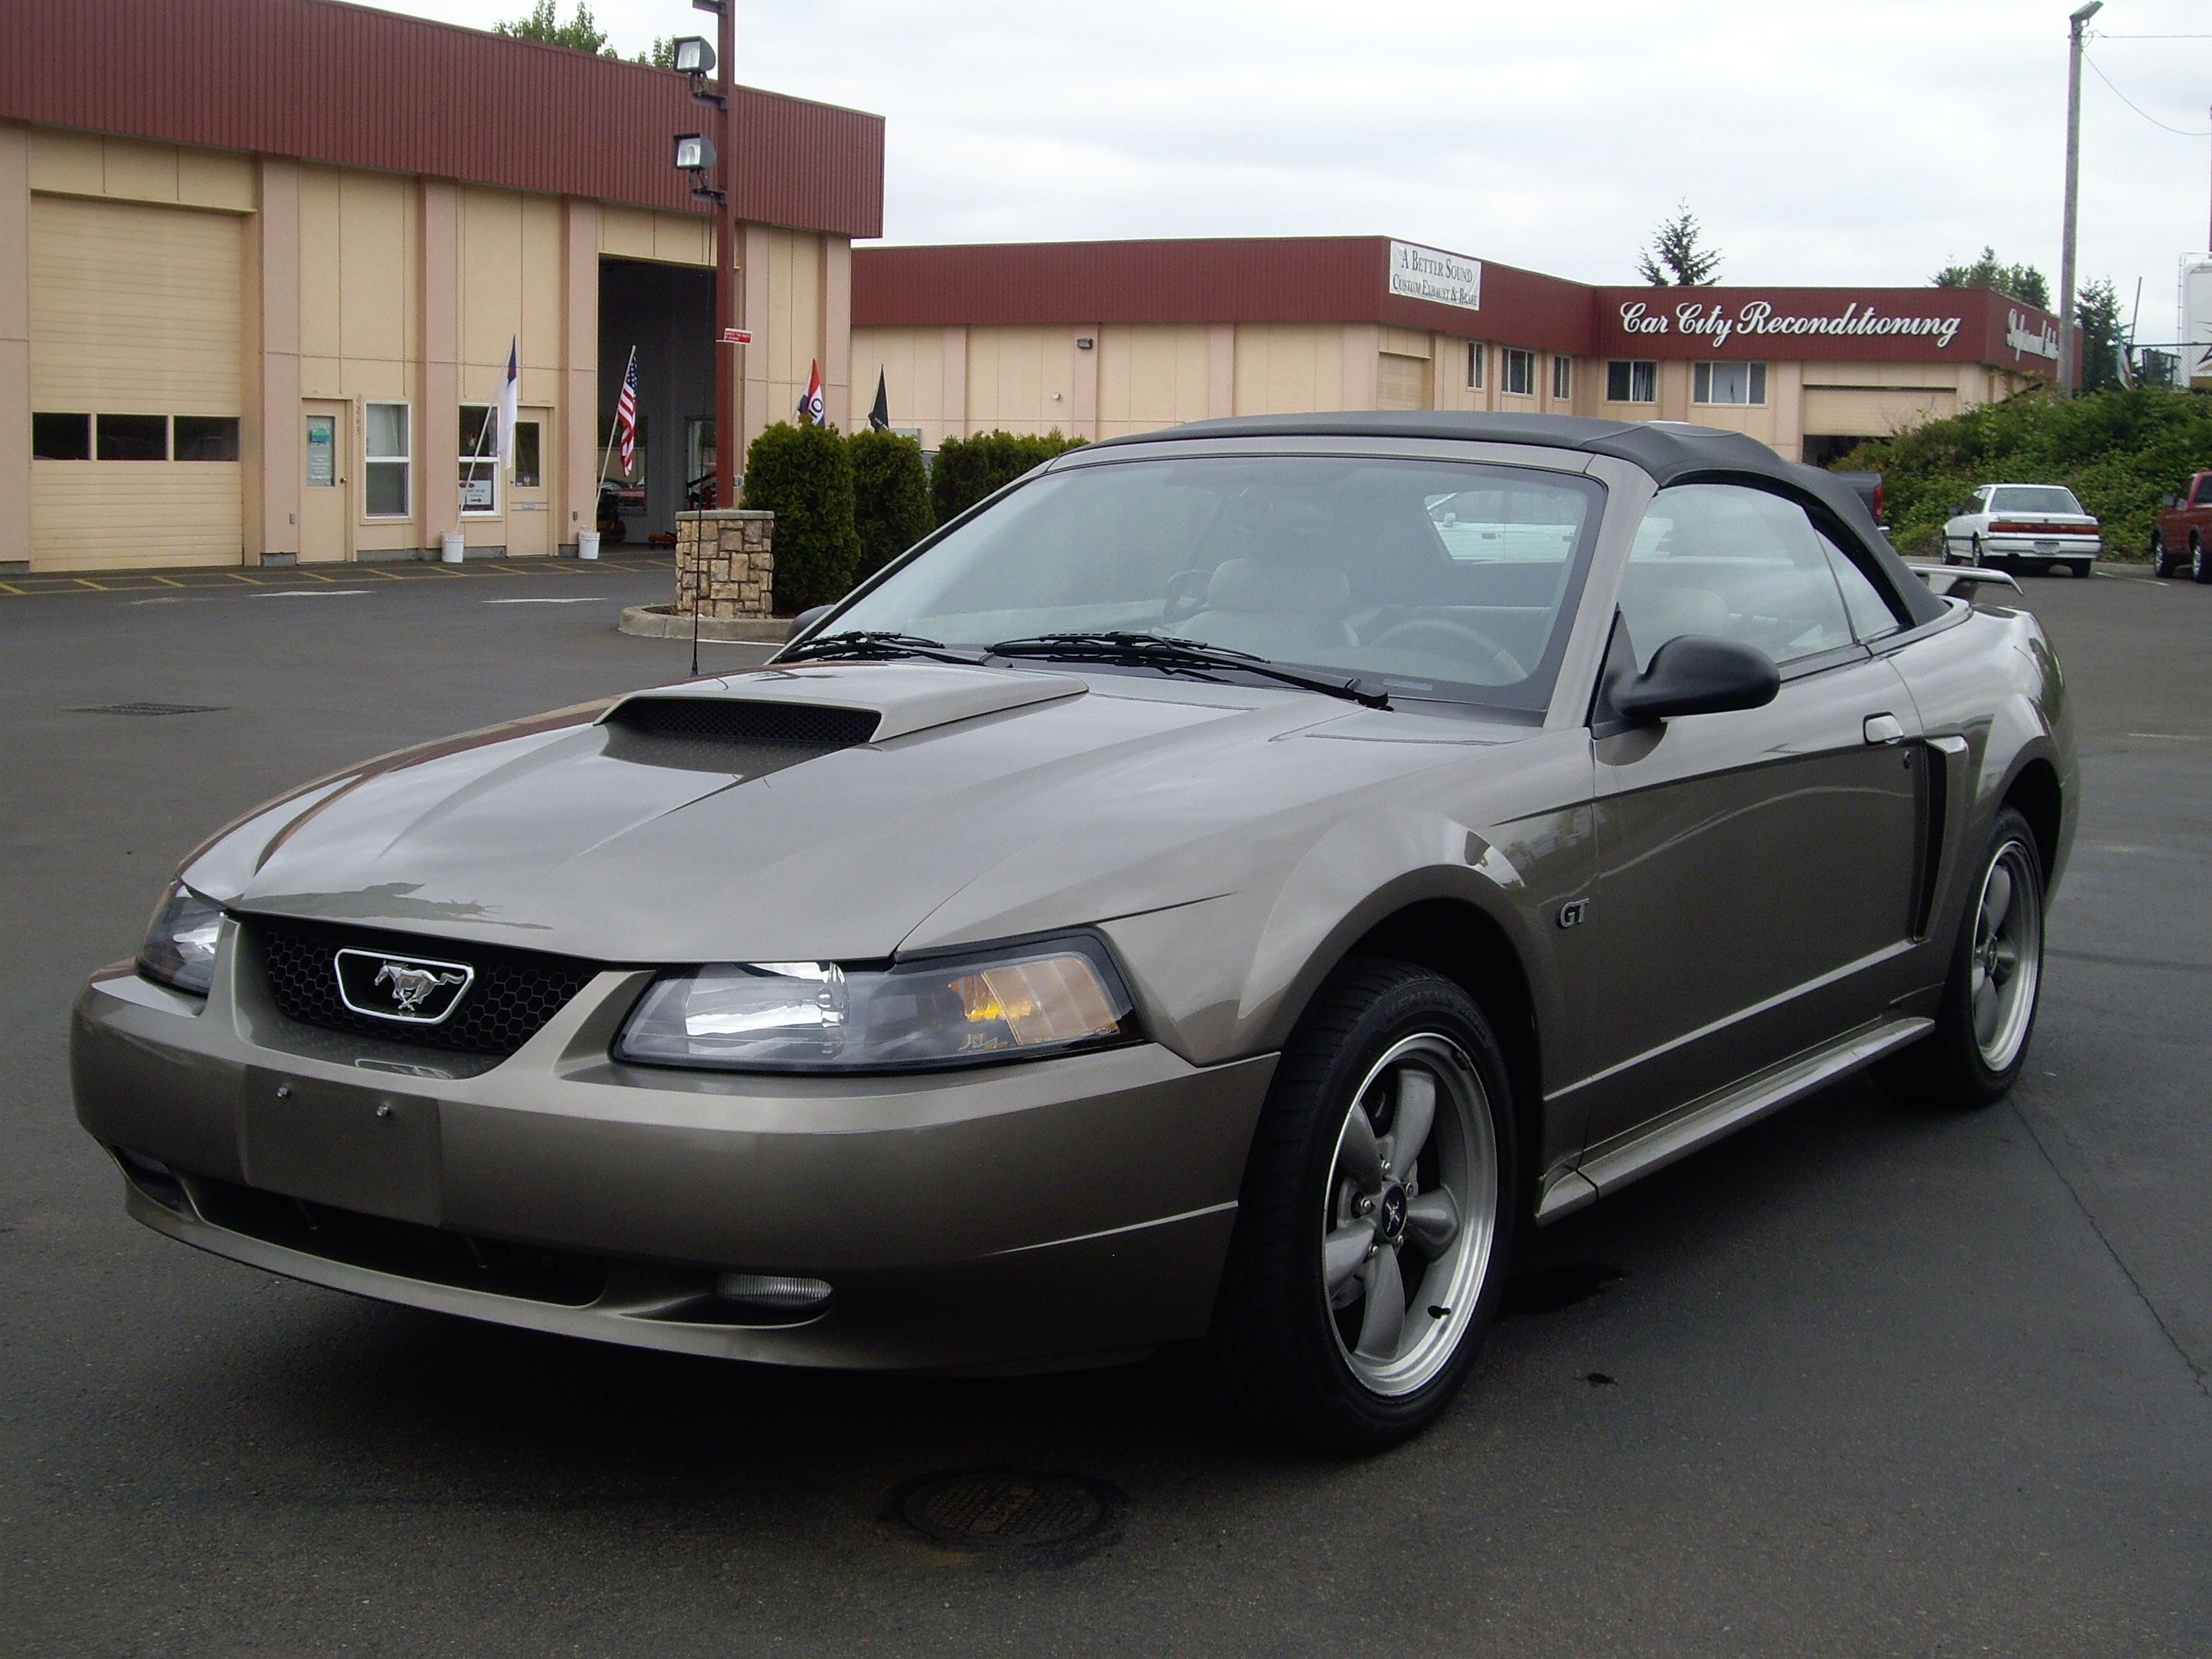 2002 ford mustang image 7